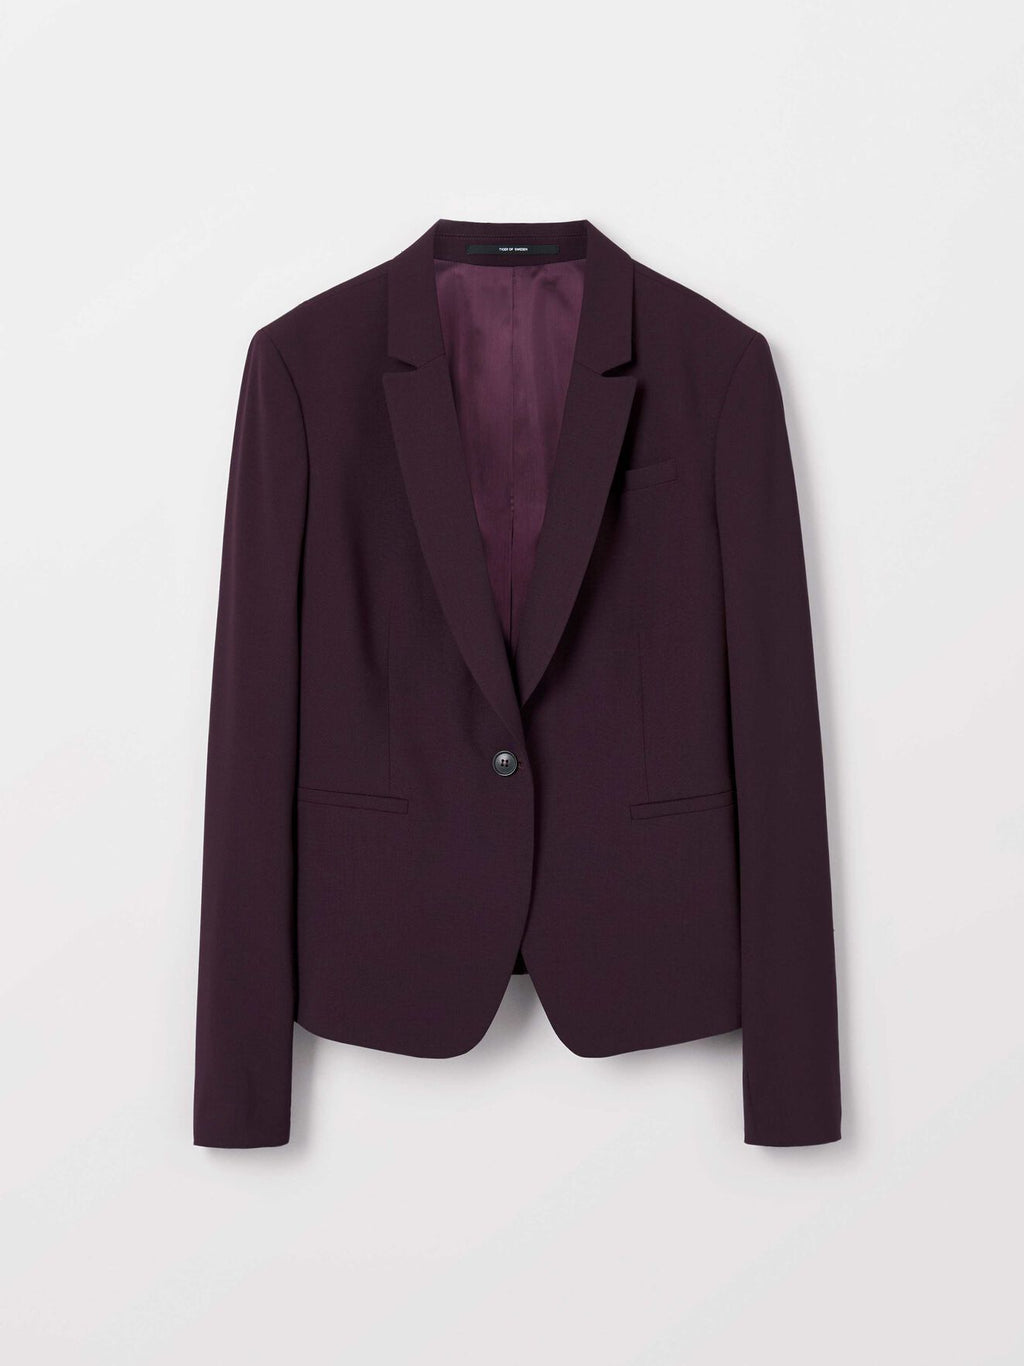 kana 2 jacket juicy plum s65632001 Tiger of Sweden